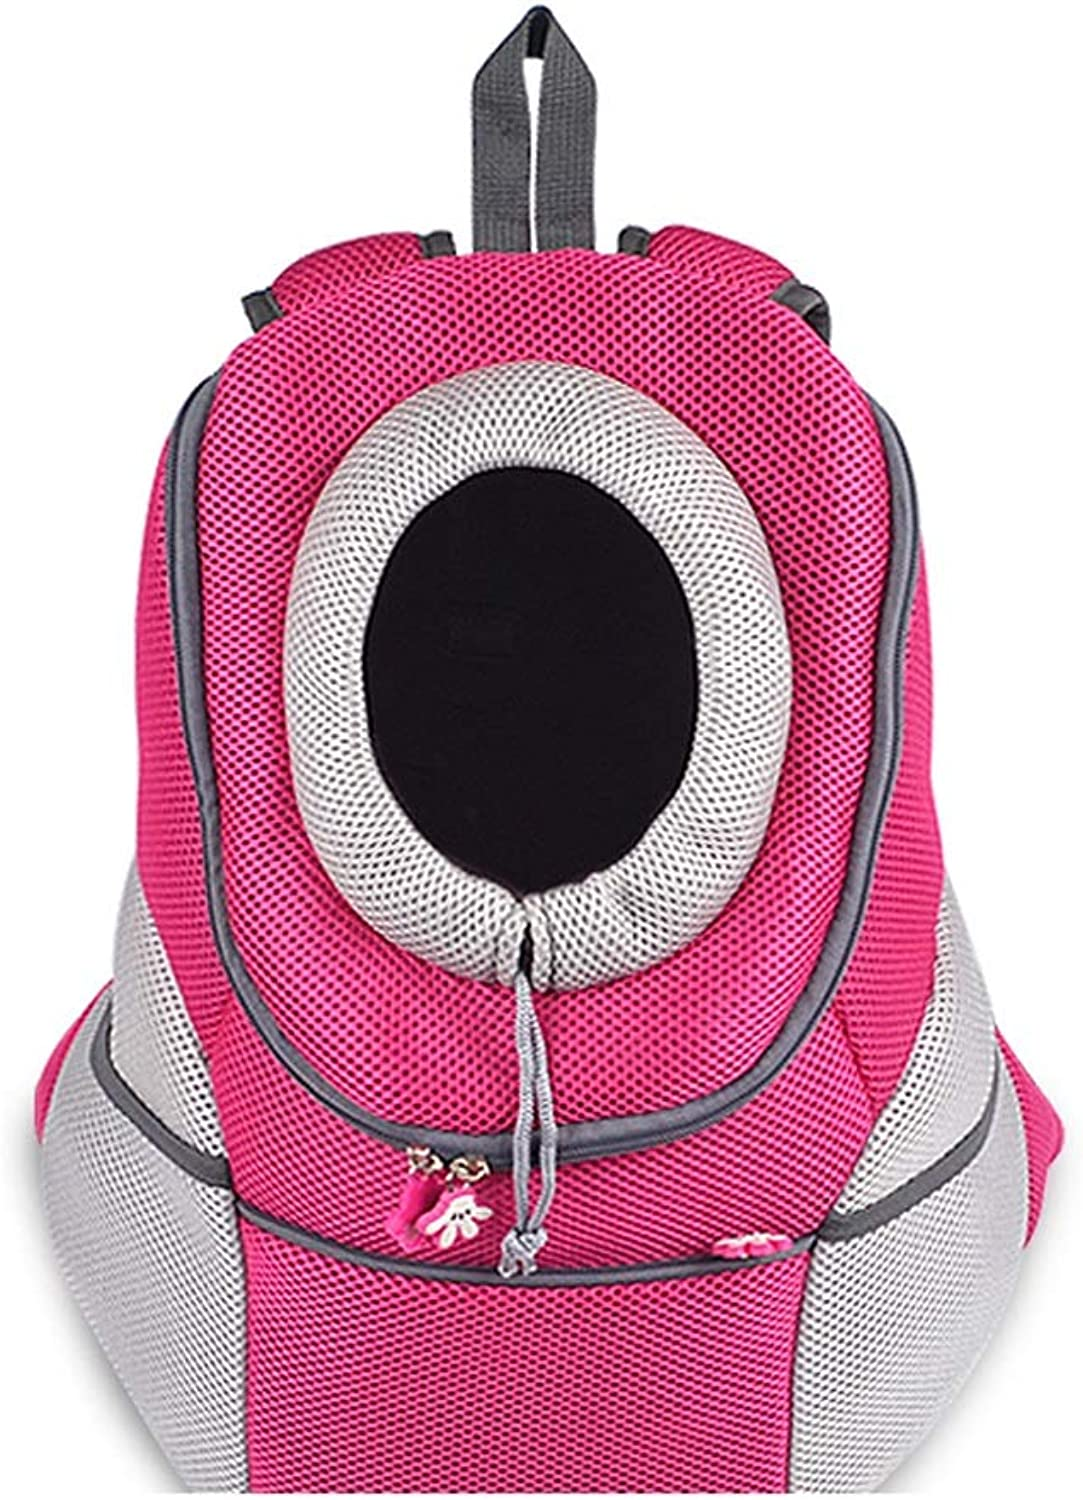 Pet Backpack Outgoing Carrying Case Chest Shoulder Bags Handbag Dog Bags Cat Cage (color   Pink, Size   41X24X46cm)